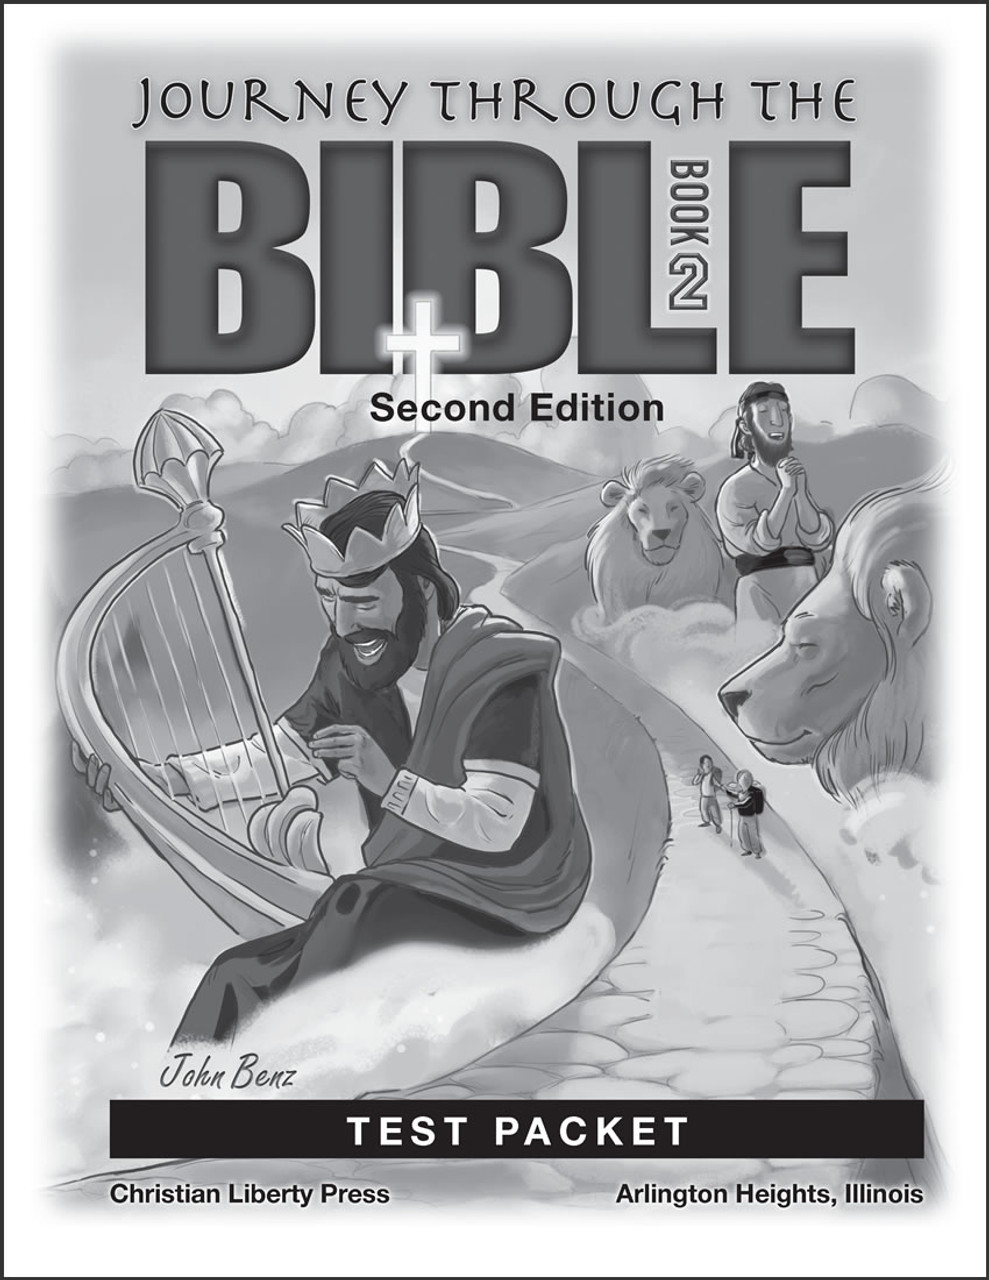 Journey Through the Bible: Book 2 - Wisdom and Prophetic Books, 2nd edition - Test Packet